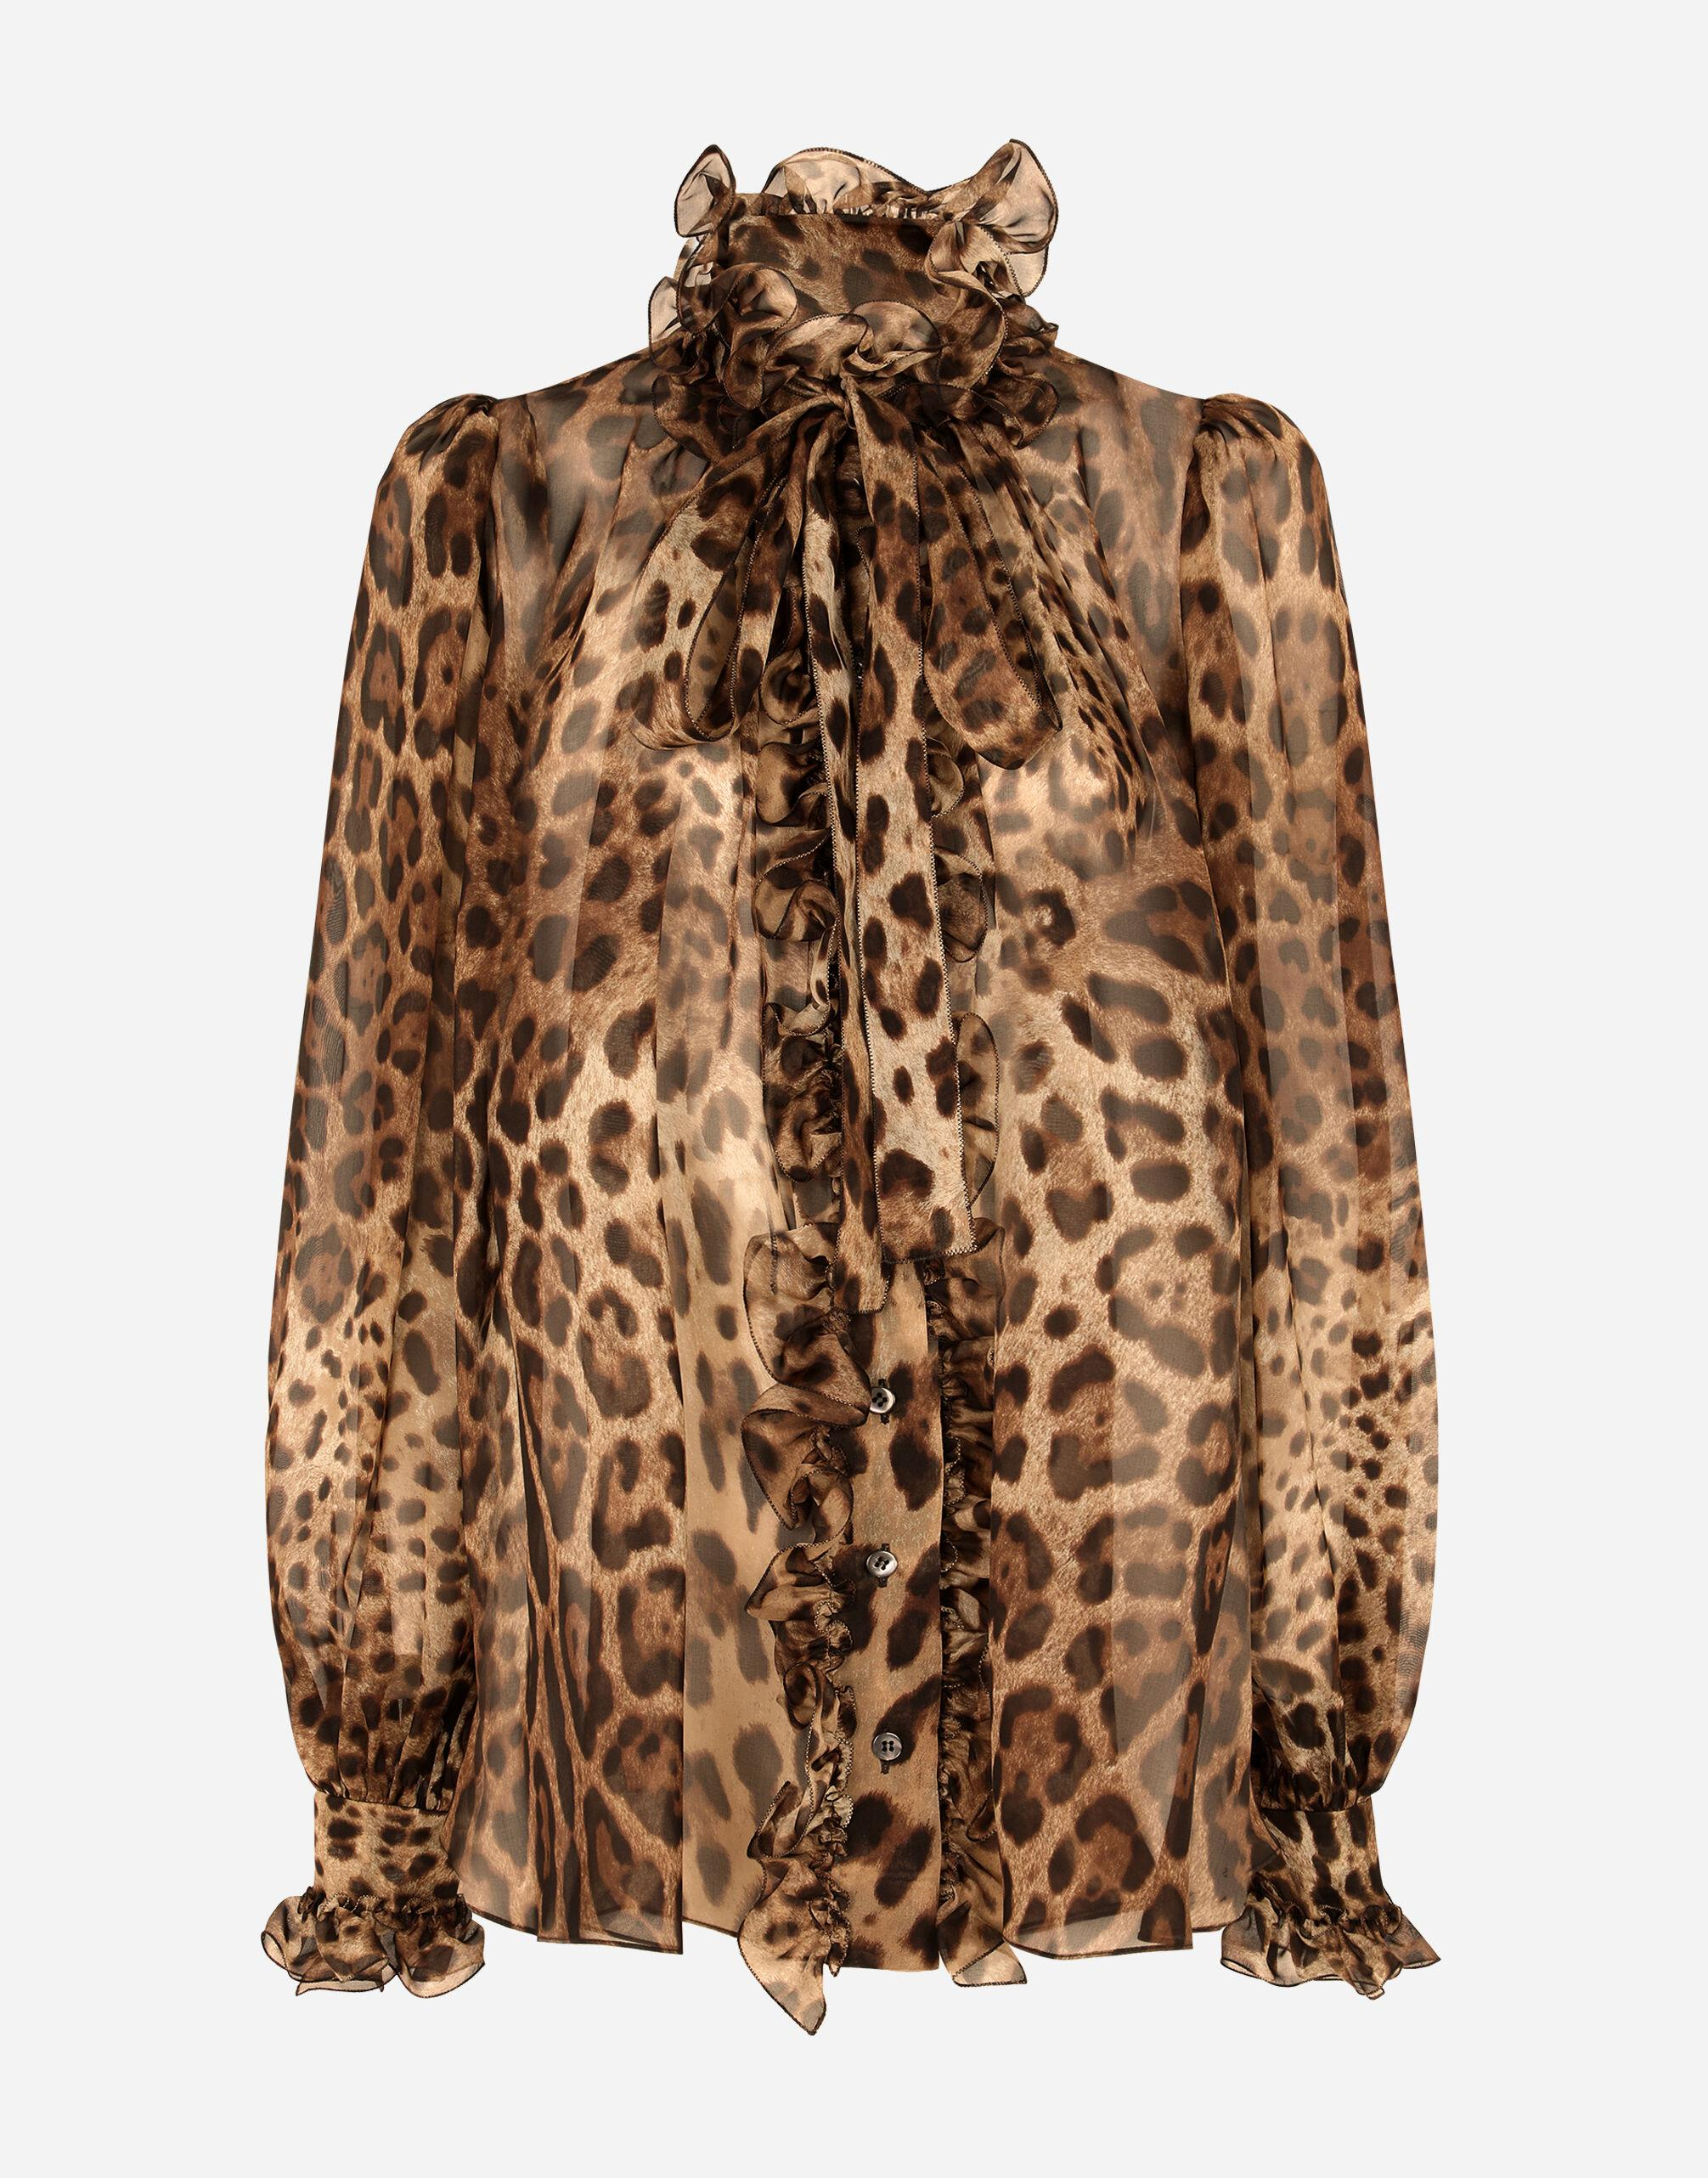 Leopard-print chiffon shirt with ruches and pussy-bow 3